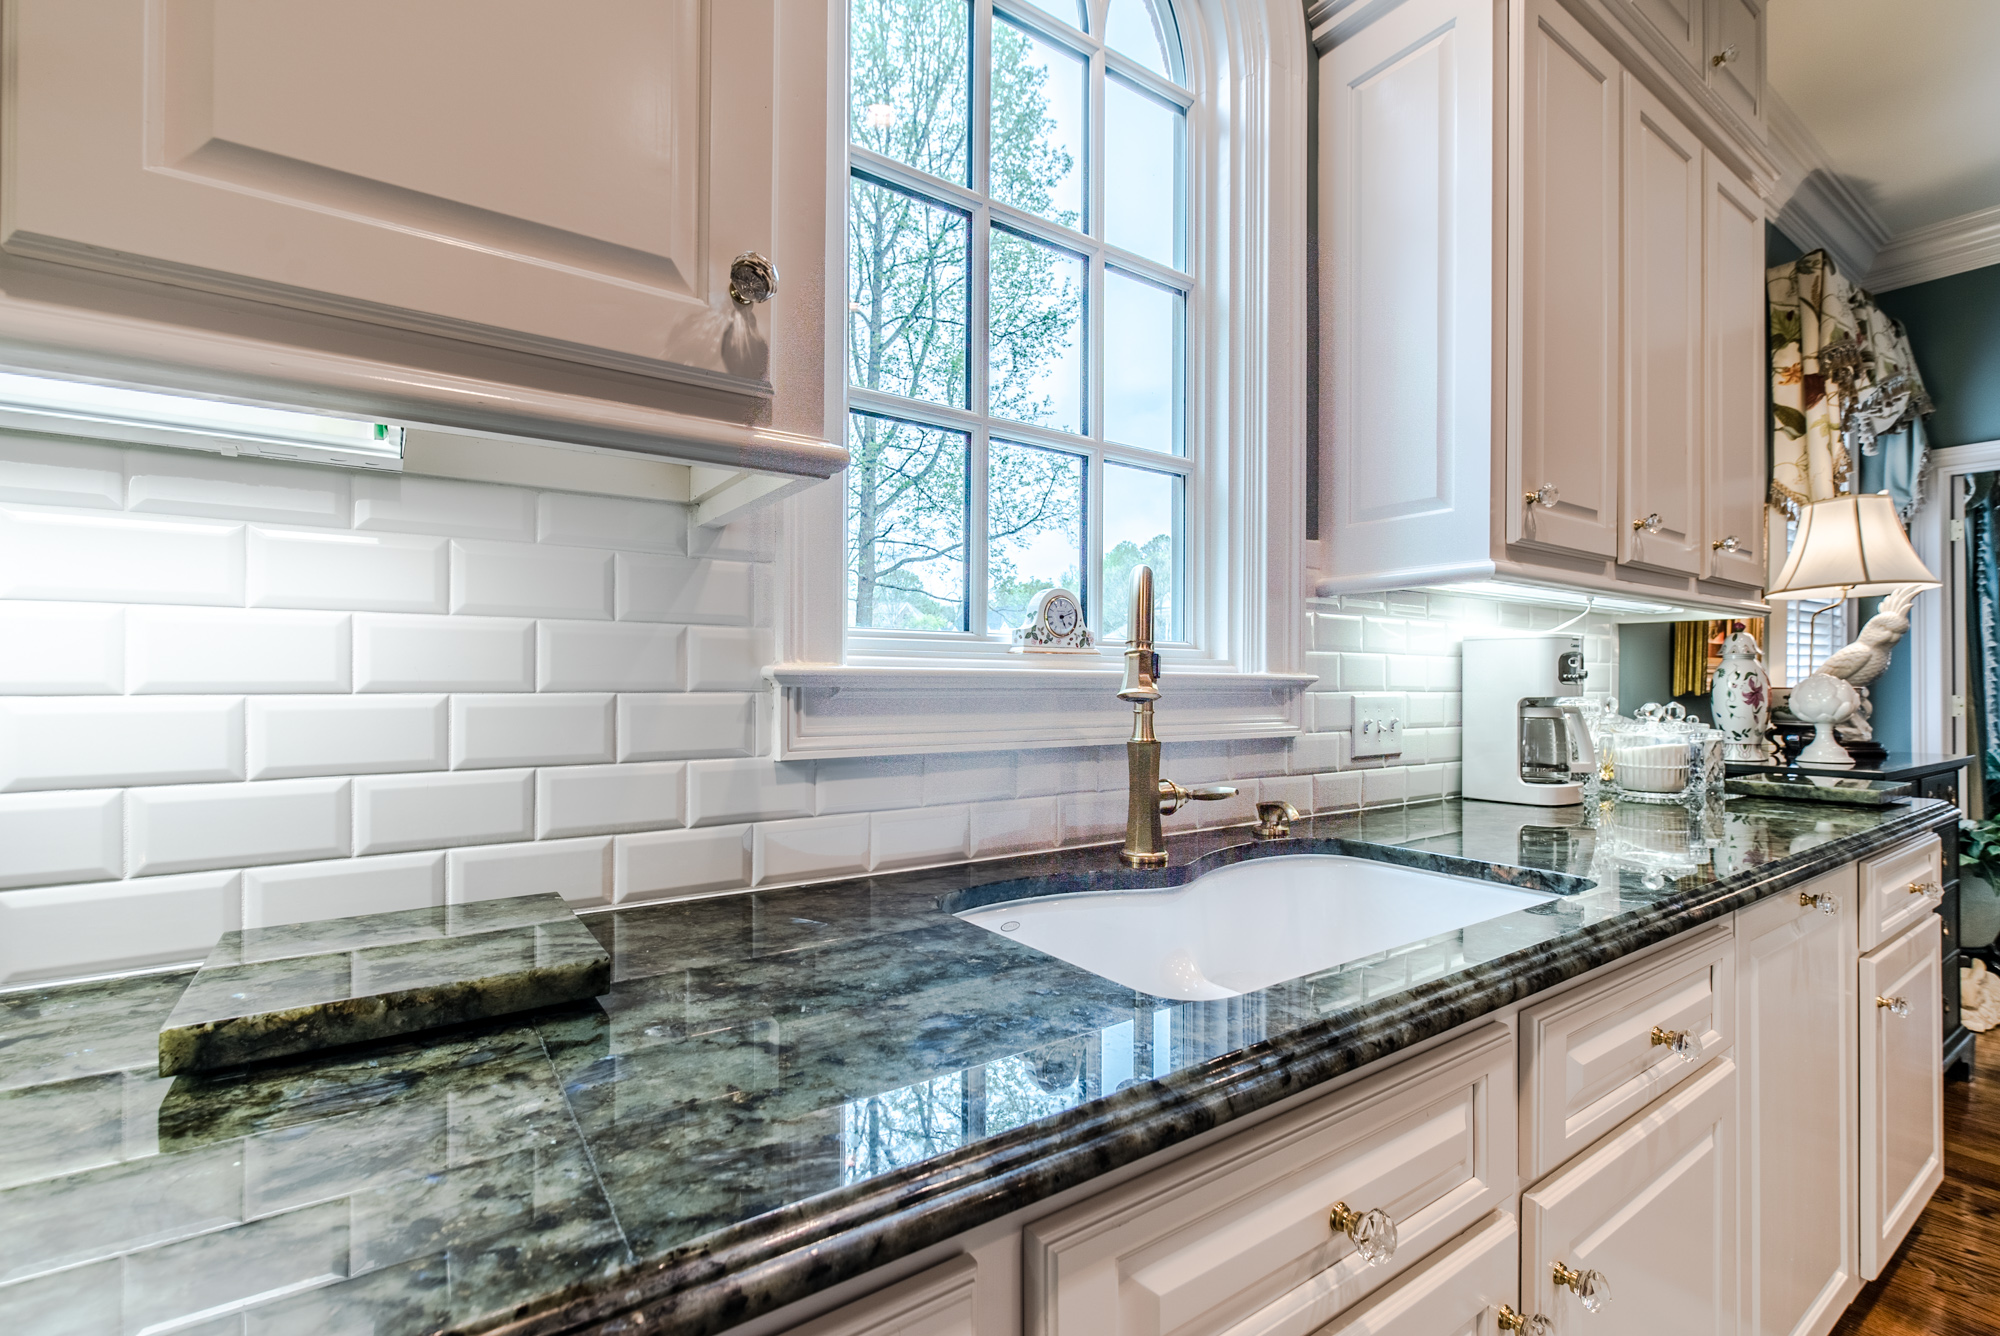 Subway tile backsplash with white subway tiles at East Coast Granite of Charlotte